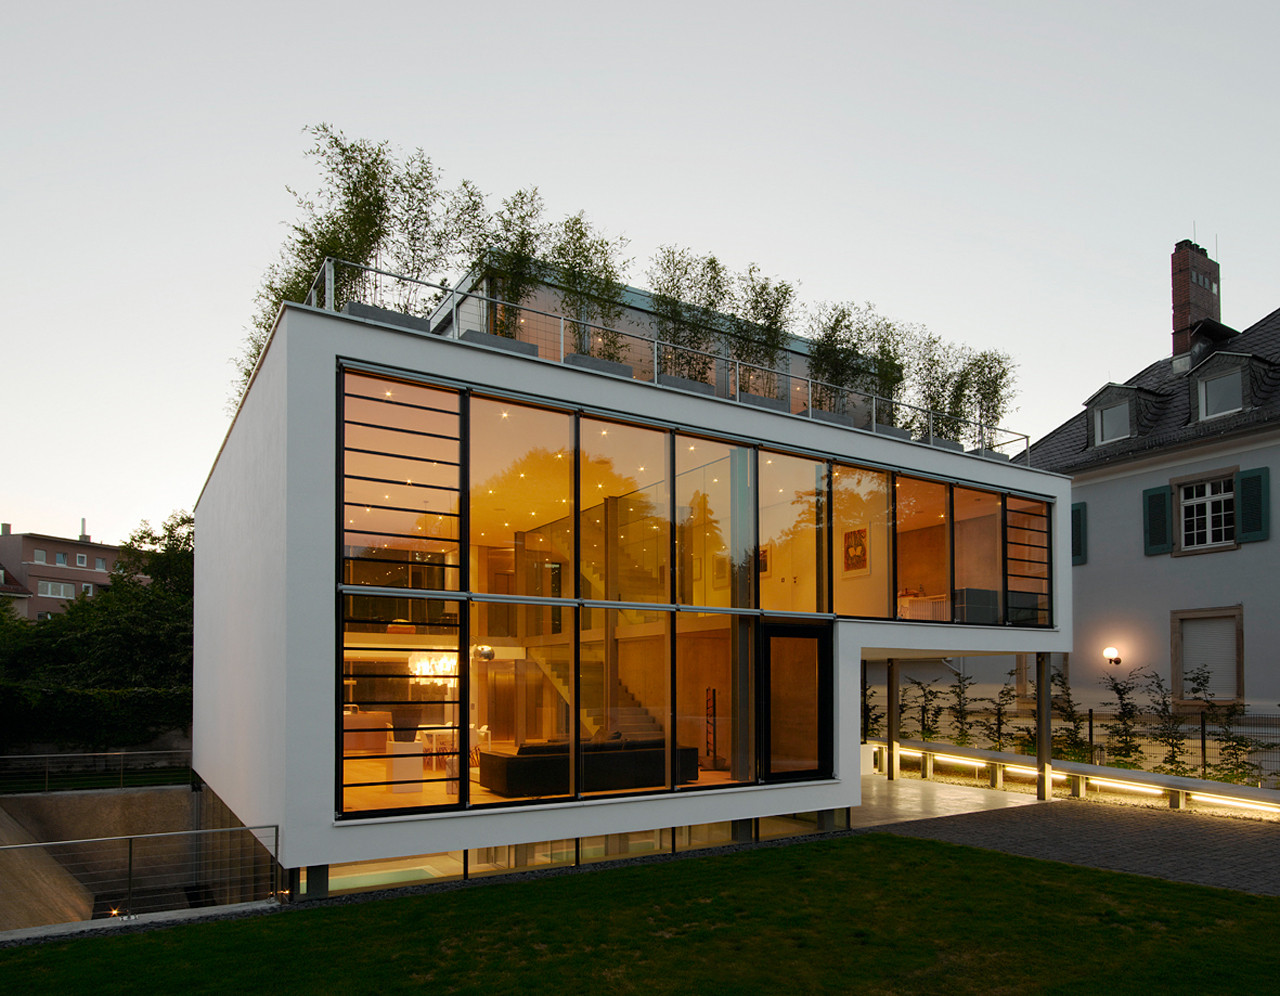 House r by christ christ associated architects in for Karlsruhe design